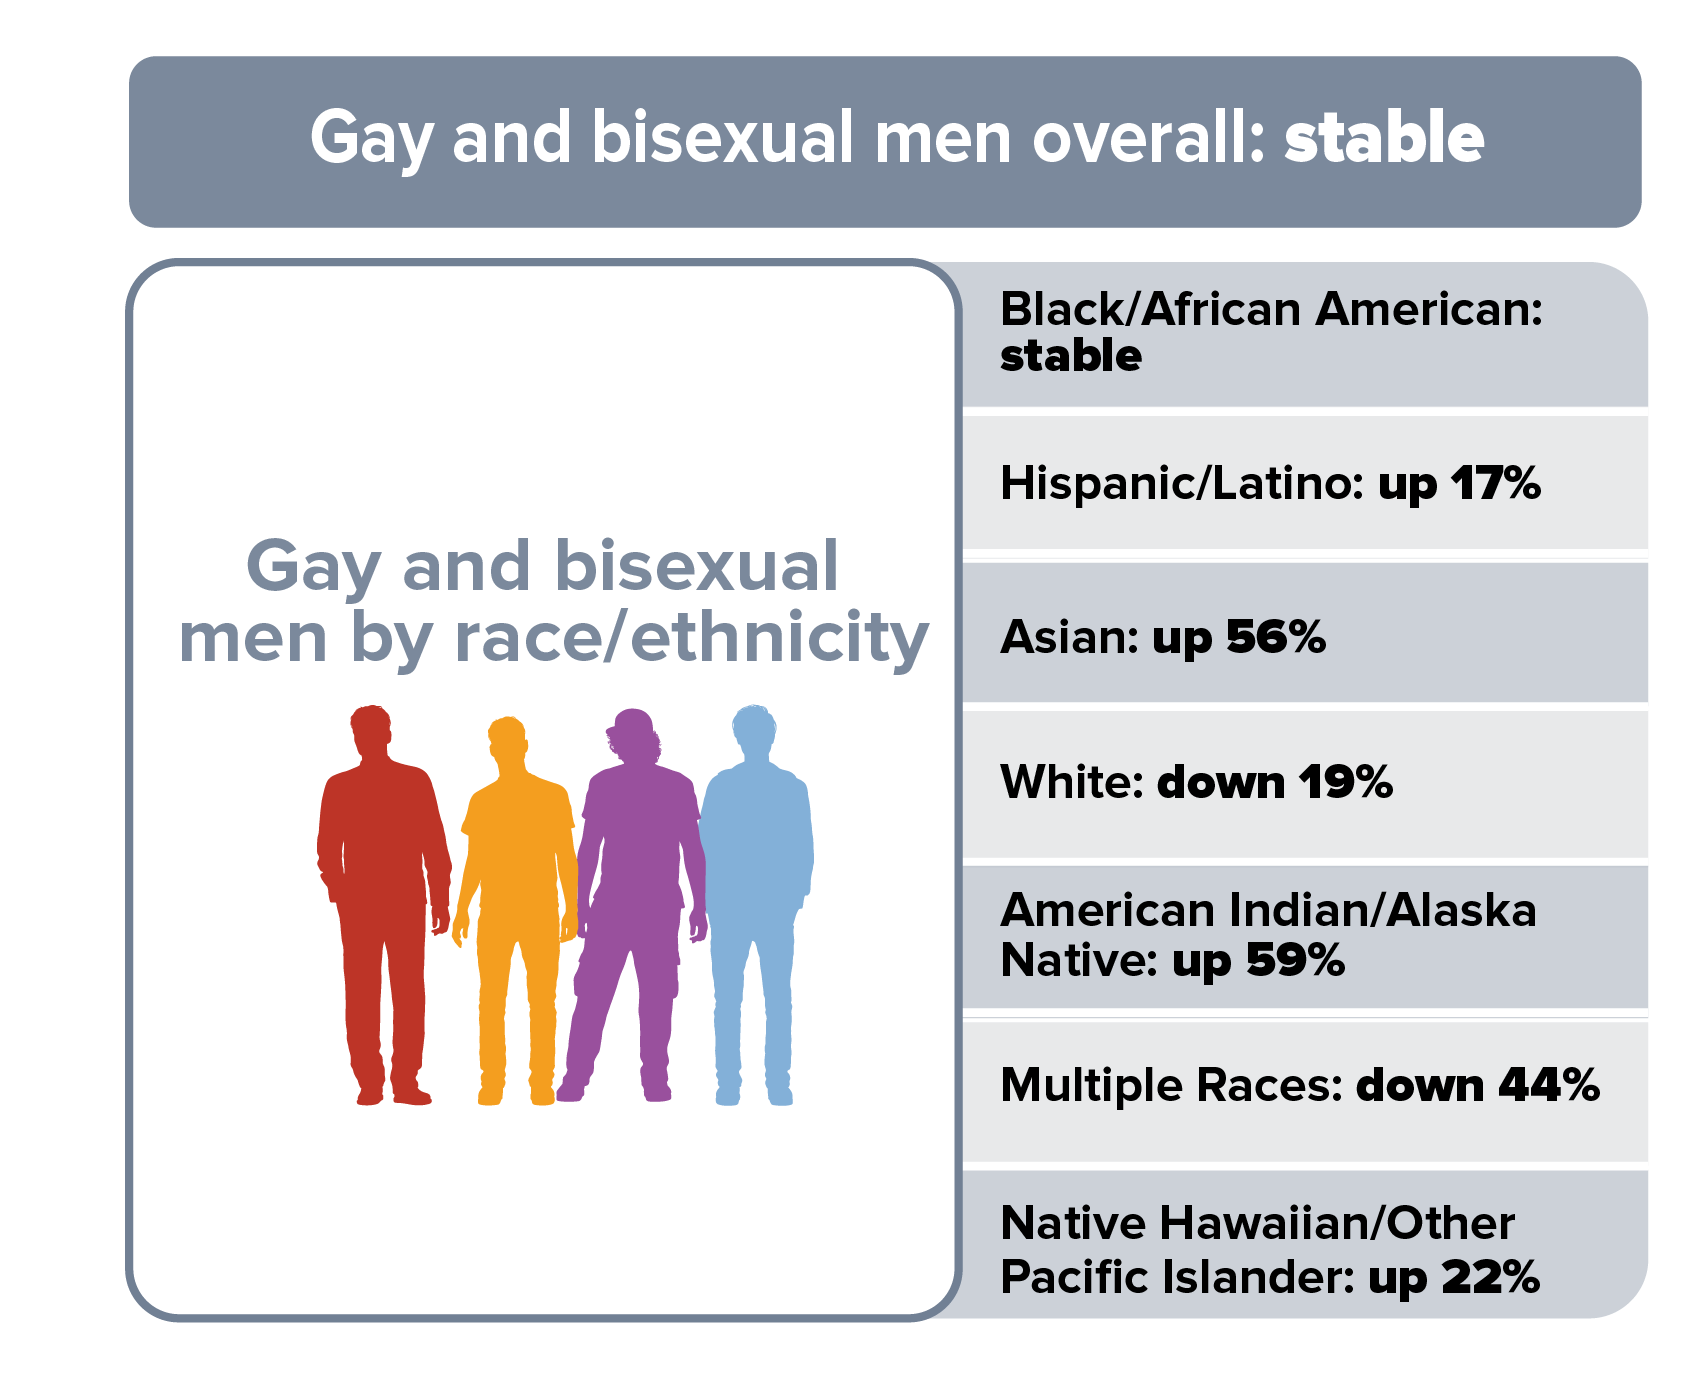 This trend chart shows HIV diagnoses among gay and bisexual men in 50 states and the District of Columbia from 2010 to 2016. HIV diagnoses remained stable among gay and bisexual men overall. Gay and bisexual men by race/ethnicity, Black/African American gay and bisexual men remained stable; Hispanic/Latino gay and bisexual men increased 18%; white gay and bisexual men decreased 16%; Asian gay and bisexual men increased 52%; gay and bisexual men of multiple races decreased 34%; American Indian/Alaska Native gay and bisexual men increased 76%; and Native Hawaiian and Other Pacific Islander gay and bisexual men decreased 6%.